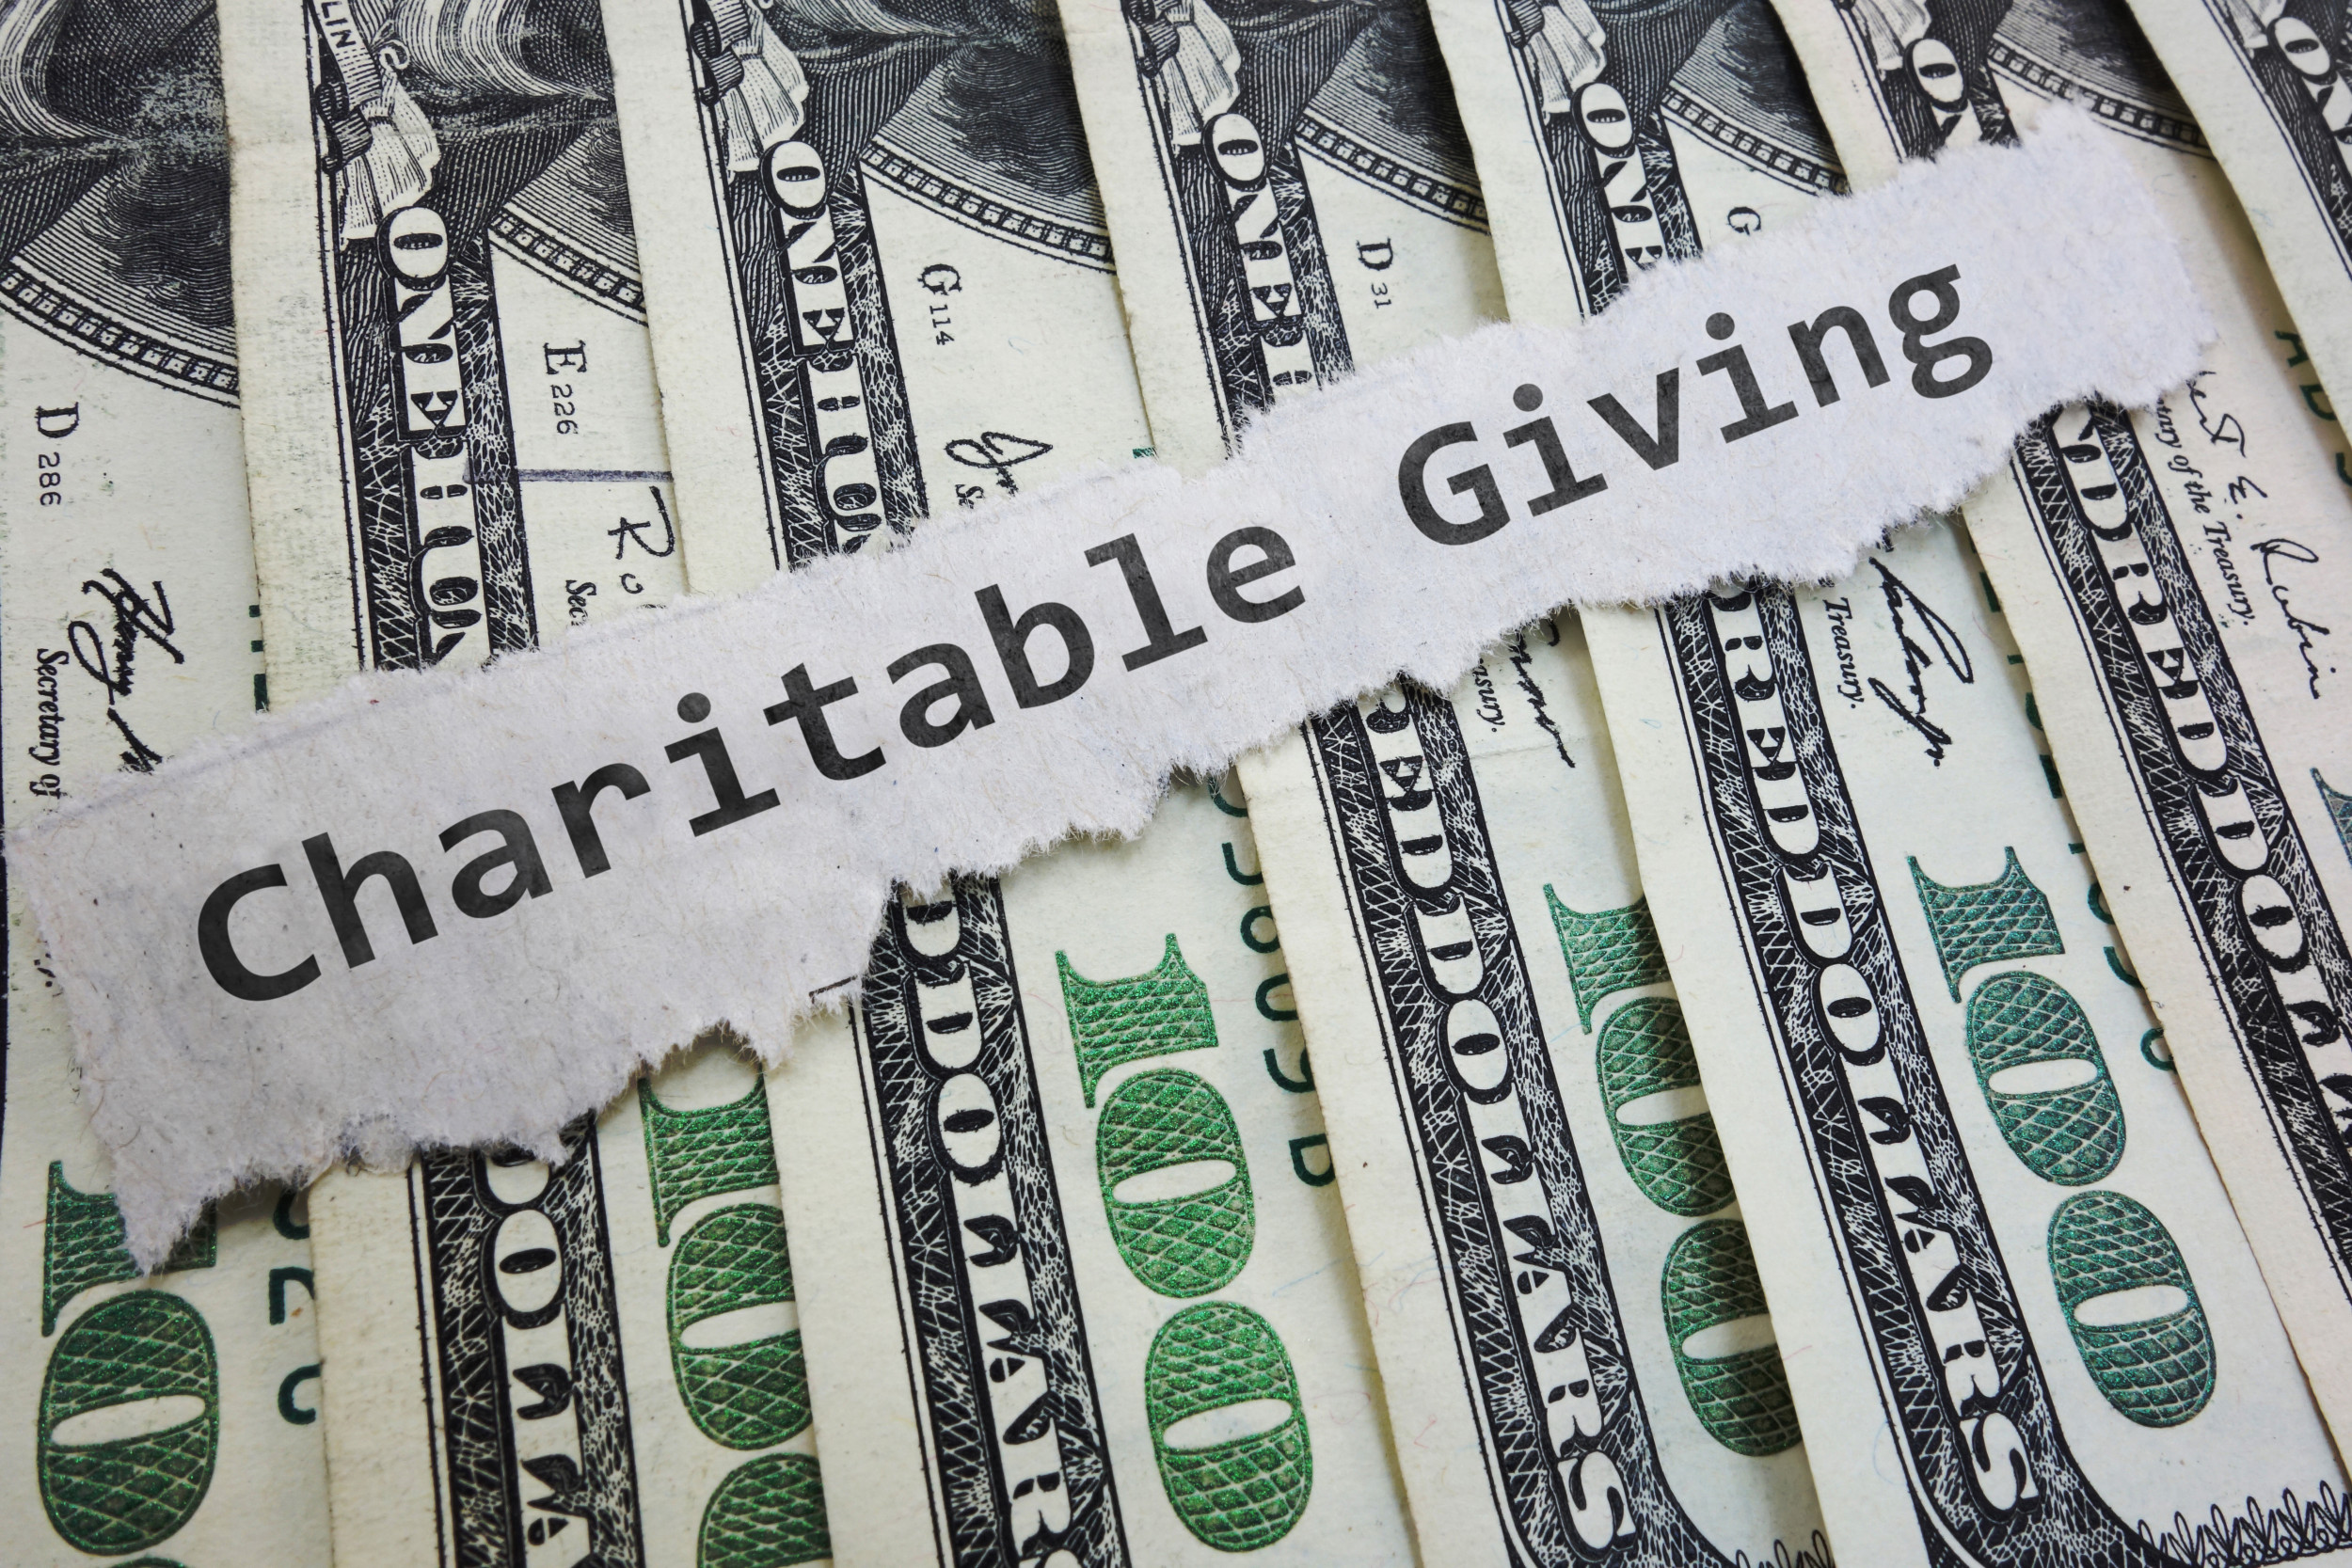 Number of Americans Giving to Charities Declines to 42 Percent, Study Shows